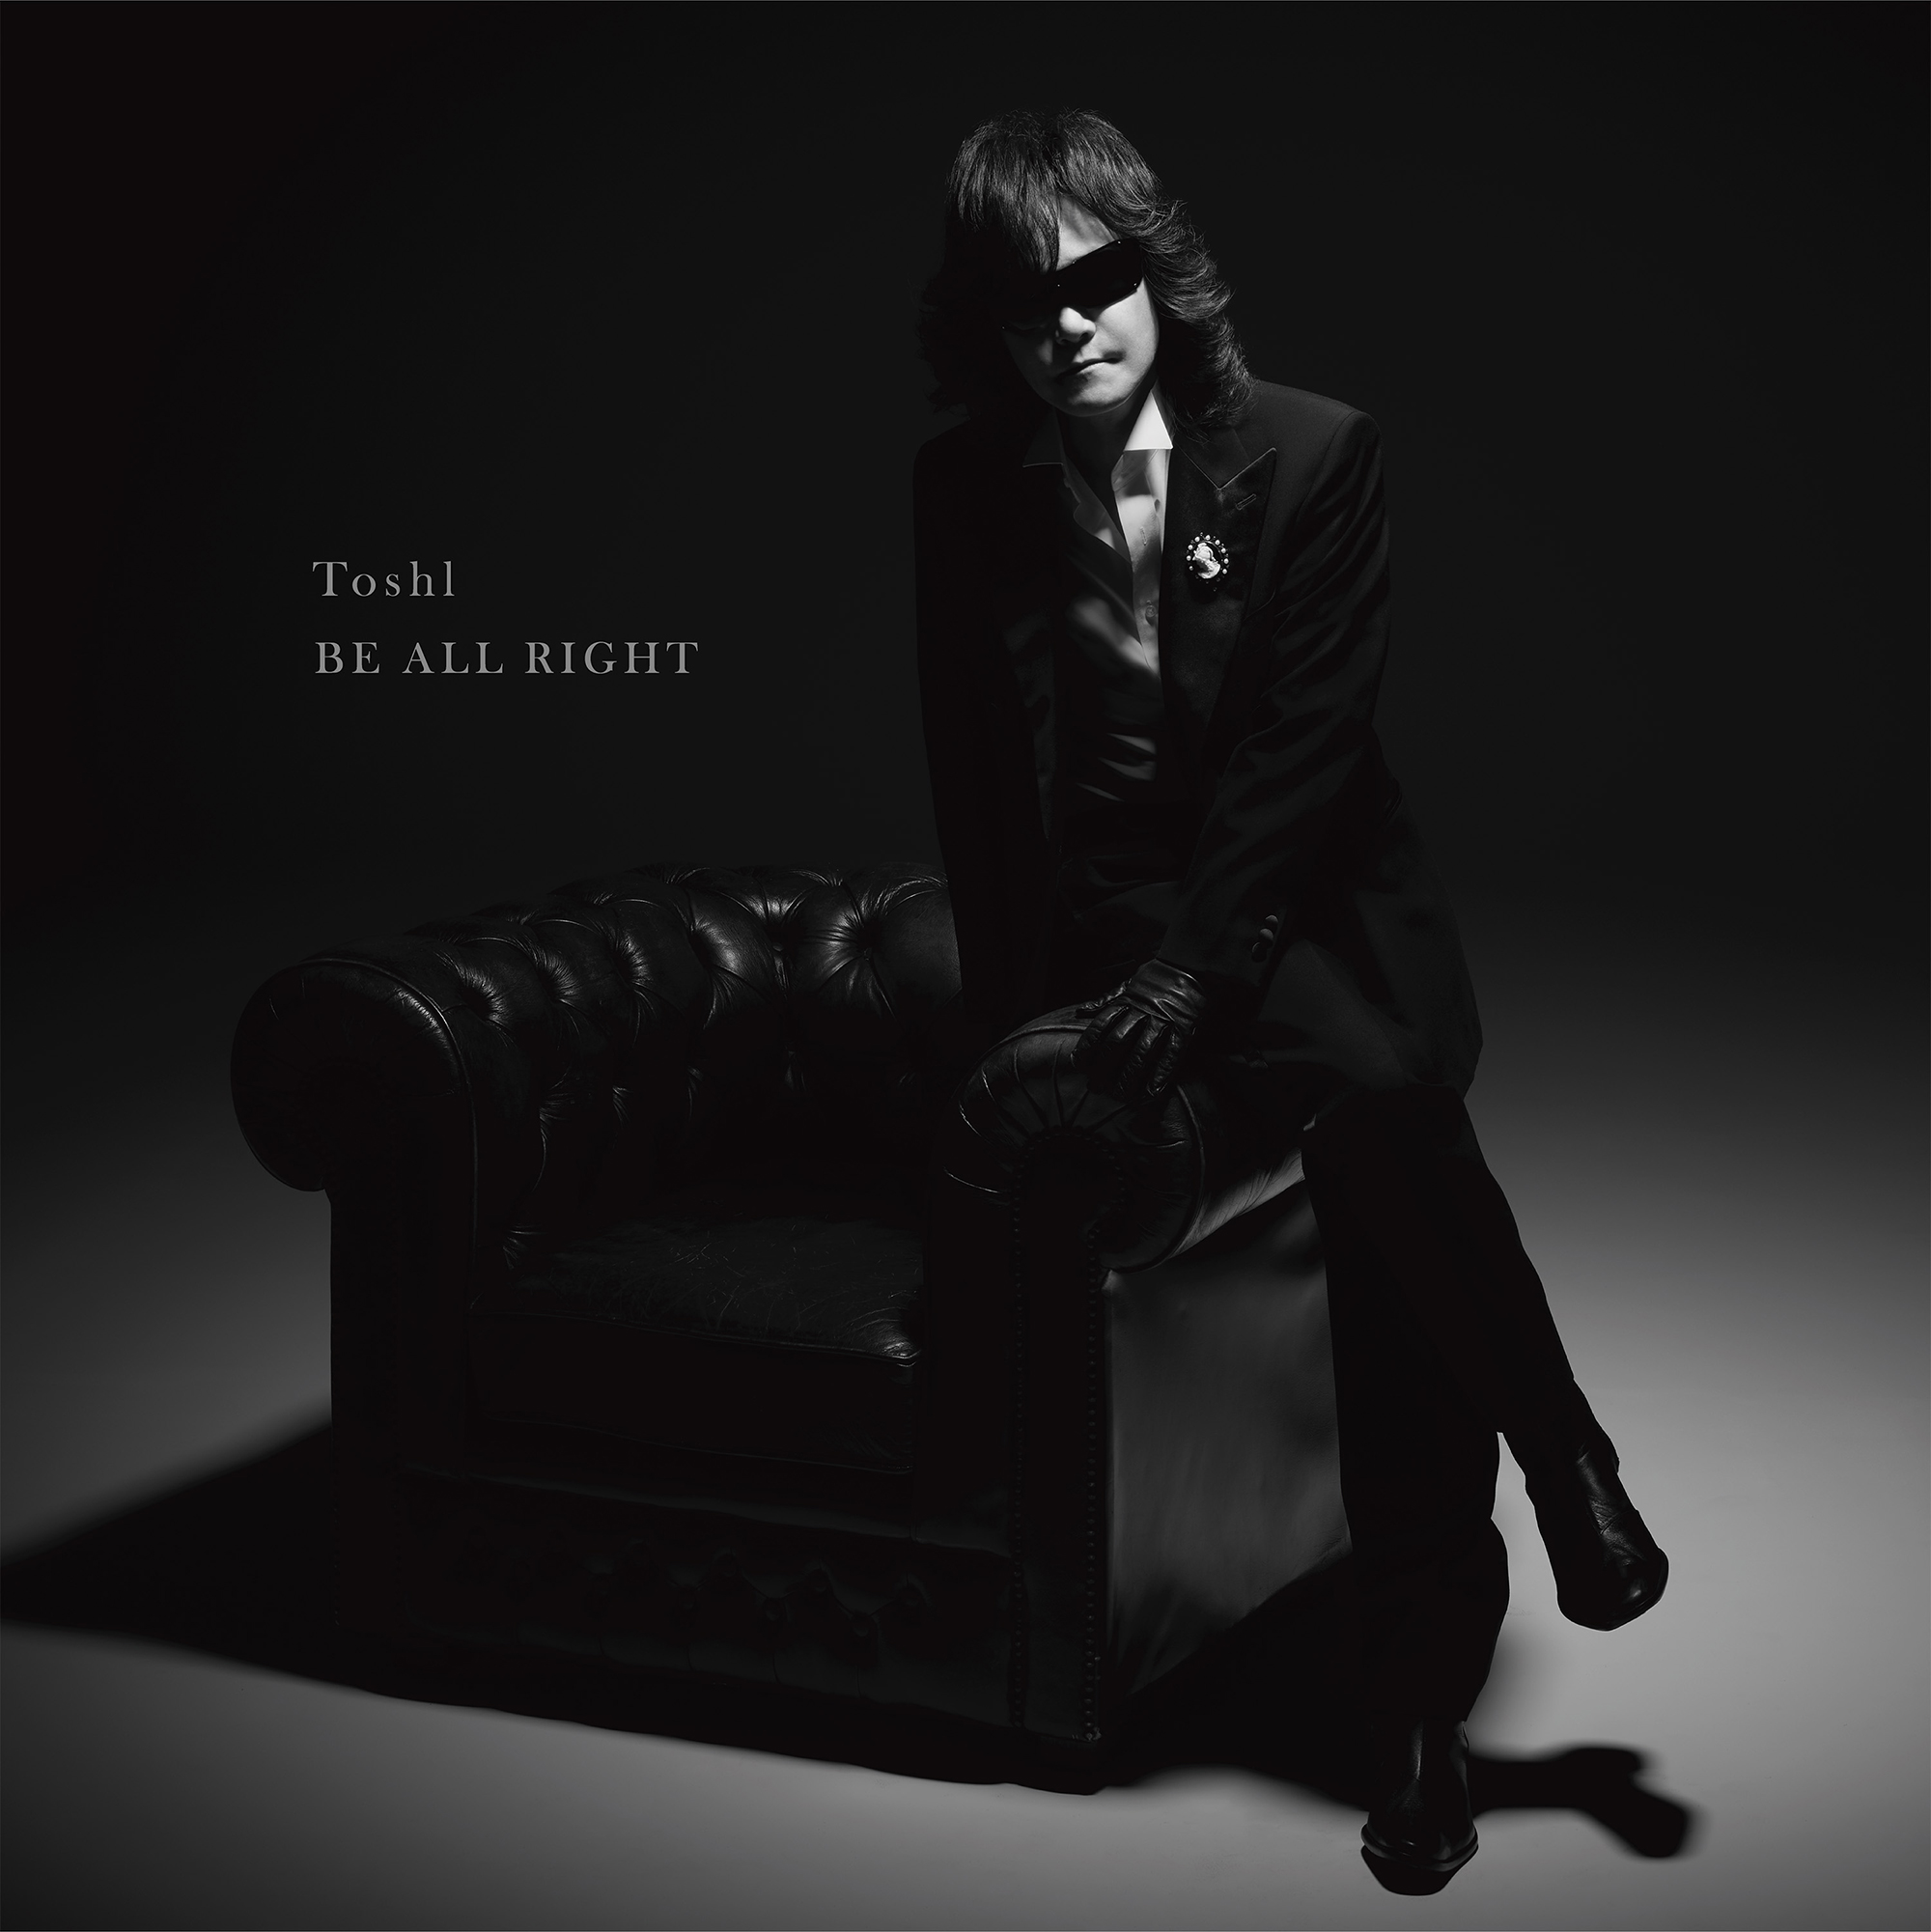 Toshl 「BE ALL RIGHT」